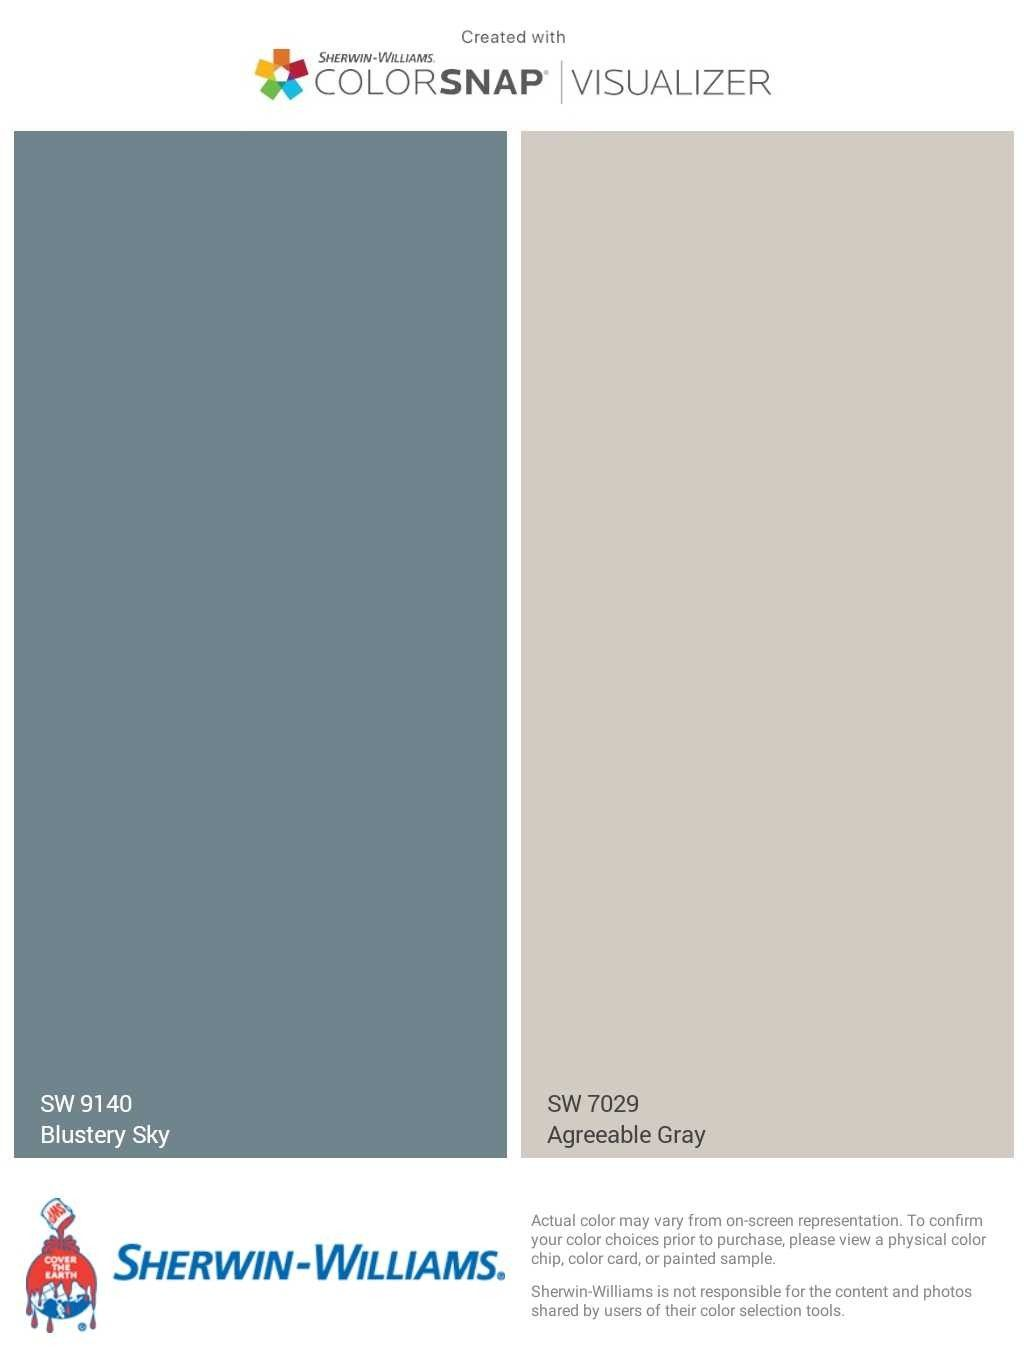 Pale Dusty Blue For House Exterior Doors And Shutter Greige Paint Colors By Sherwin Williams Bery Sky Agreeable Gray